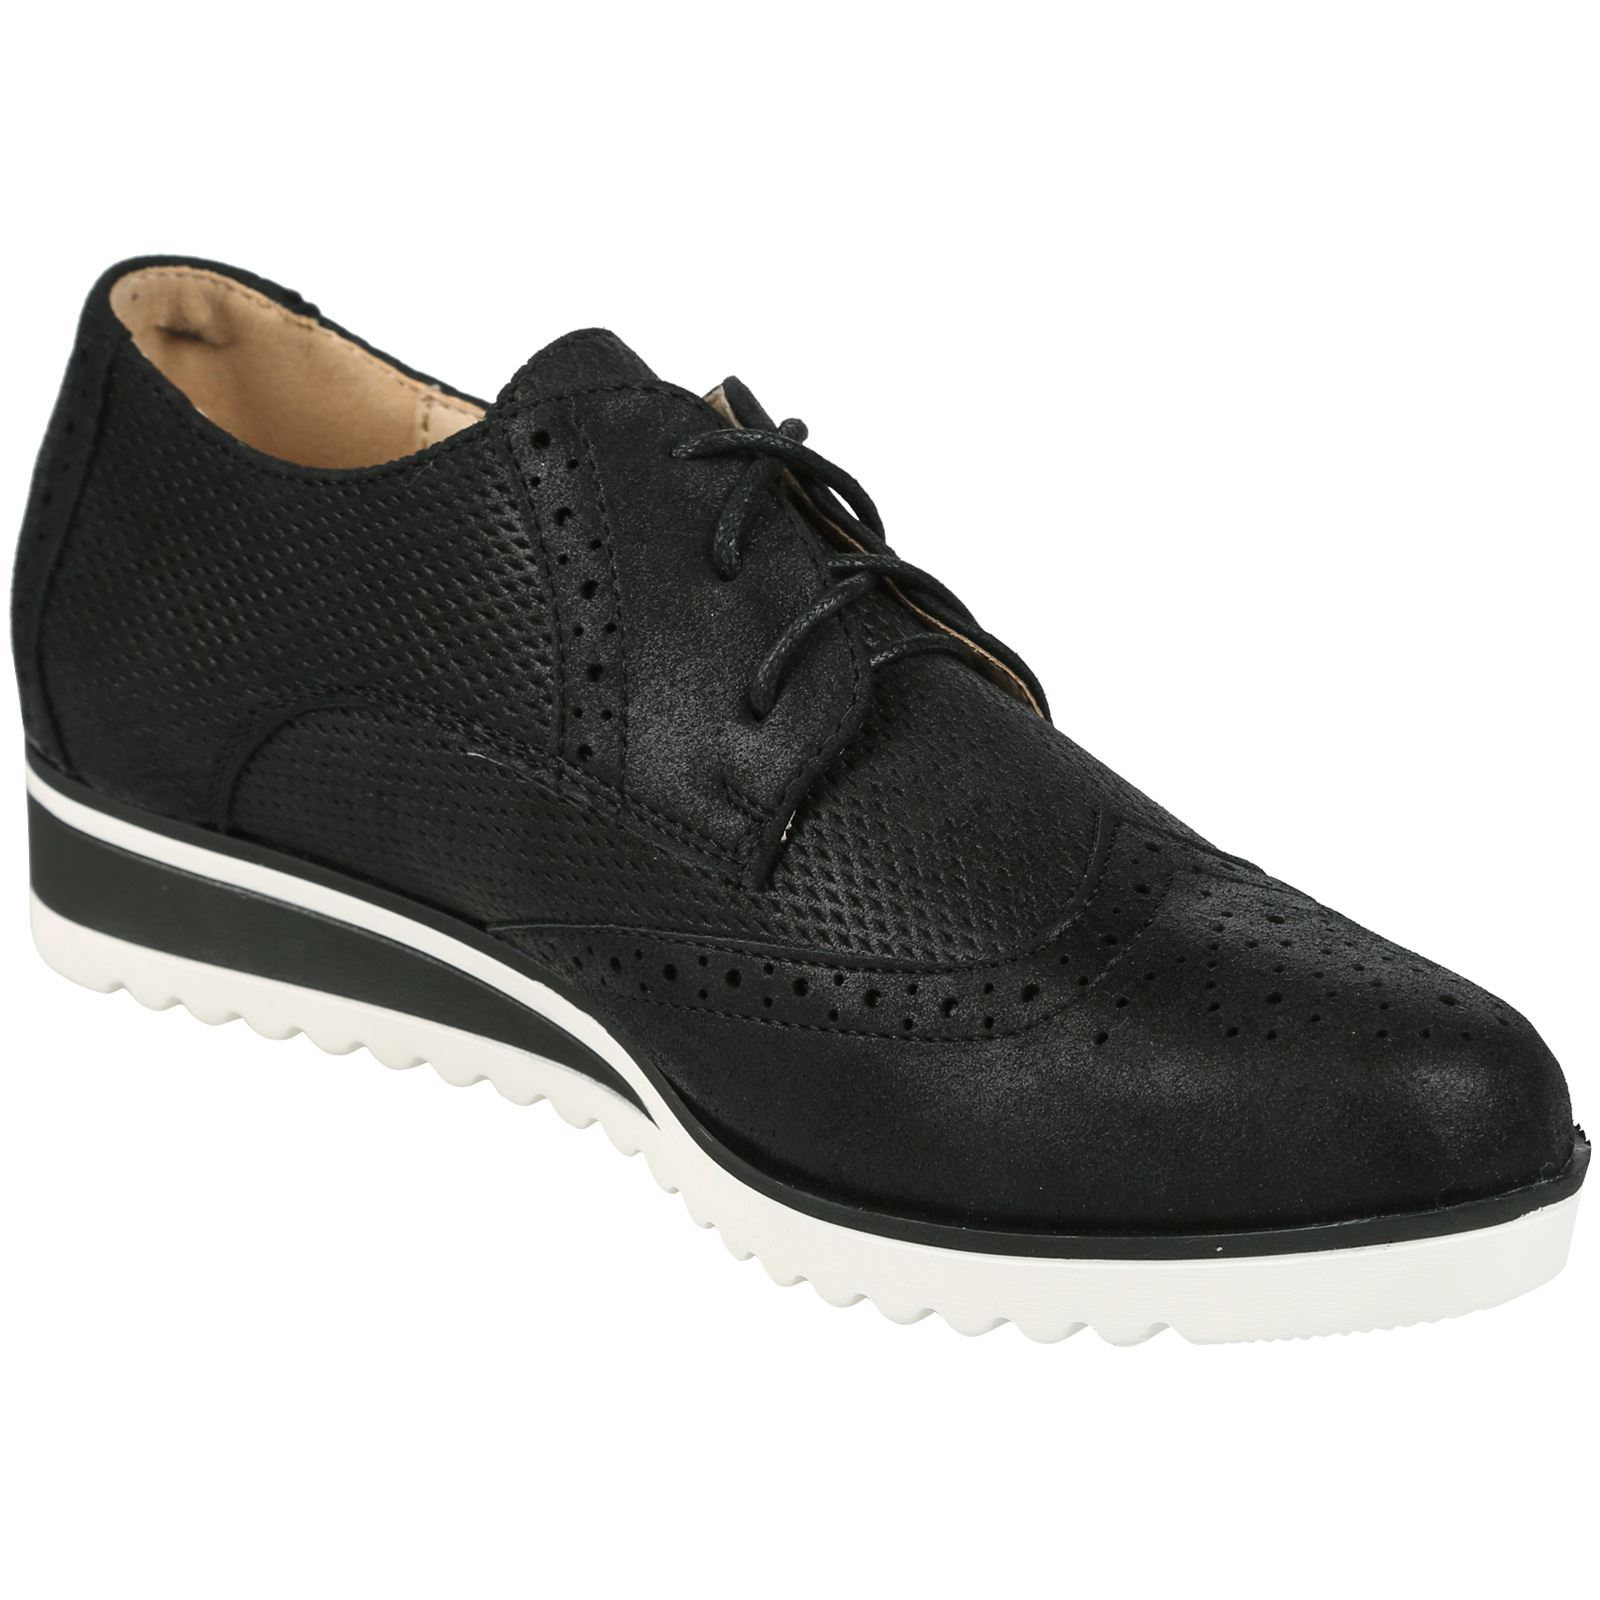 Combining on-trend formal brogue styling with a casual, modern look is new lace-up shoe, Piper. Featuring metallic leather uppers with classic brogue detailing and a padded collar, paired with a stylish, gripped, contrast sole, Piper injects a contemporary twist into a popular Man Tailored classic.